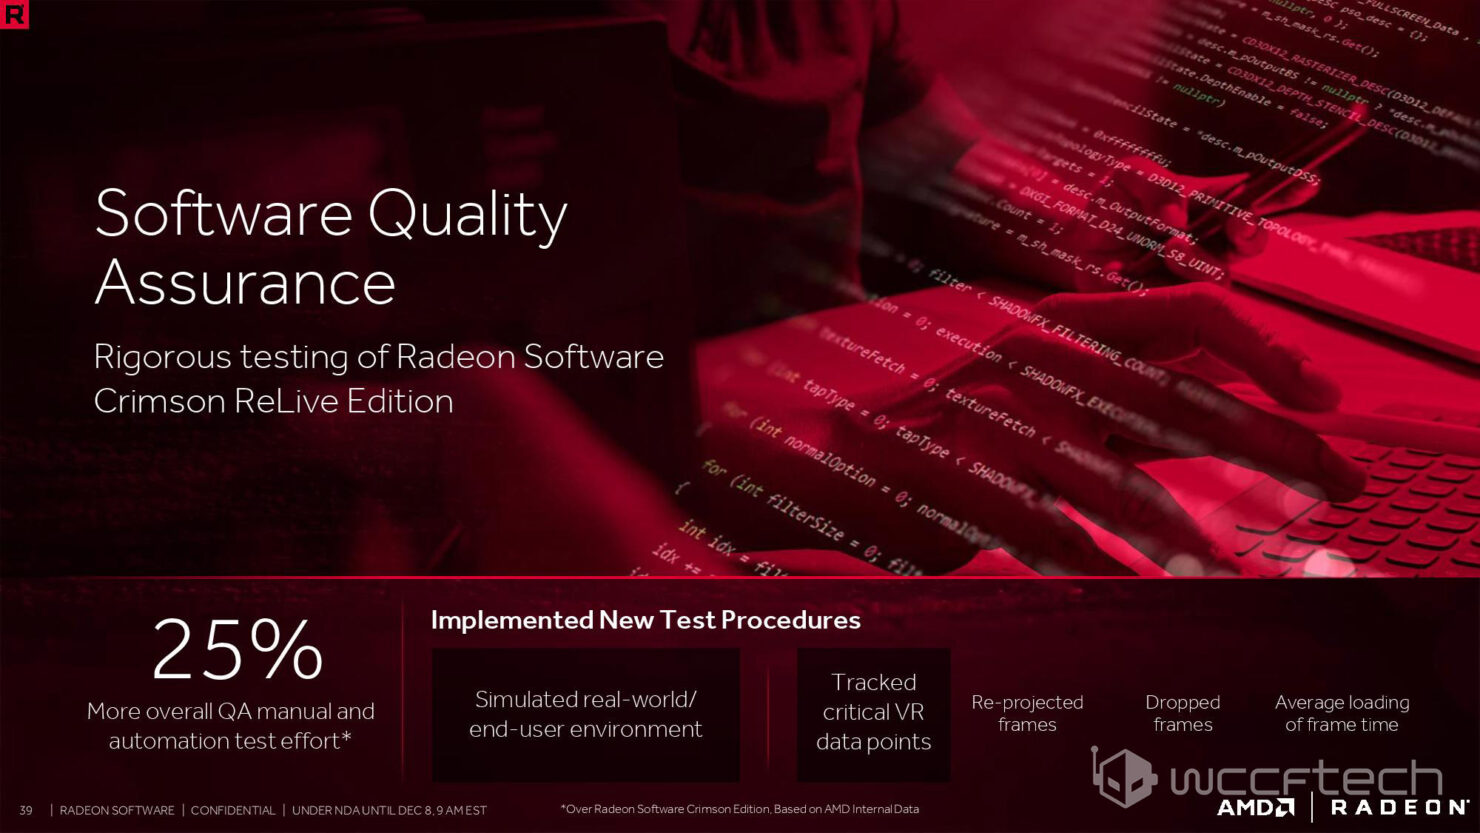 radeon-software-crimson-relive-nda-only-confidential-v4-page-039-copy